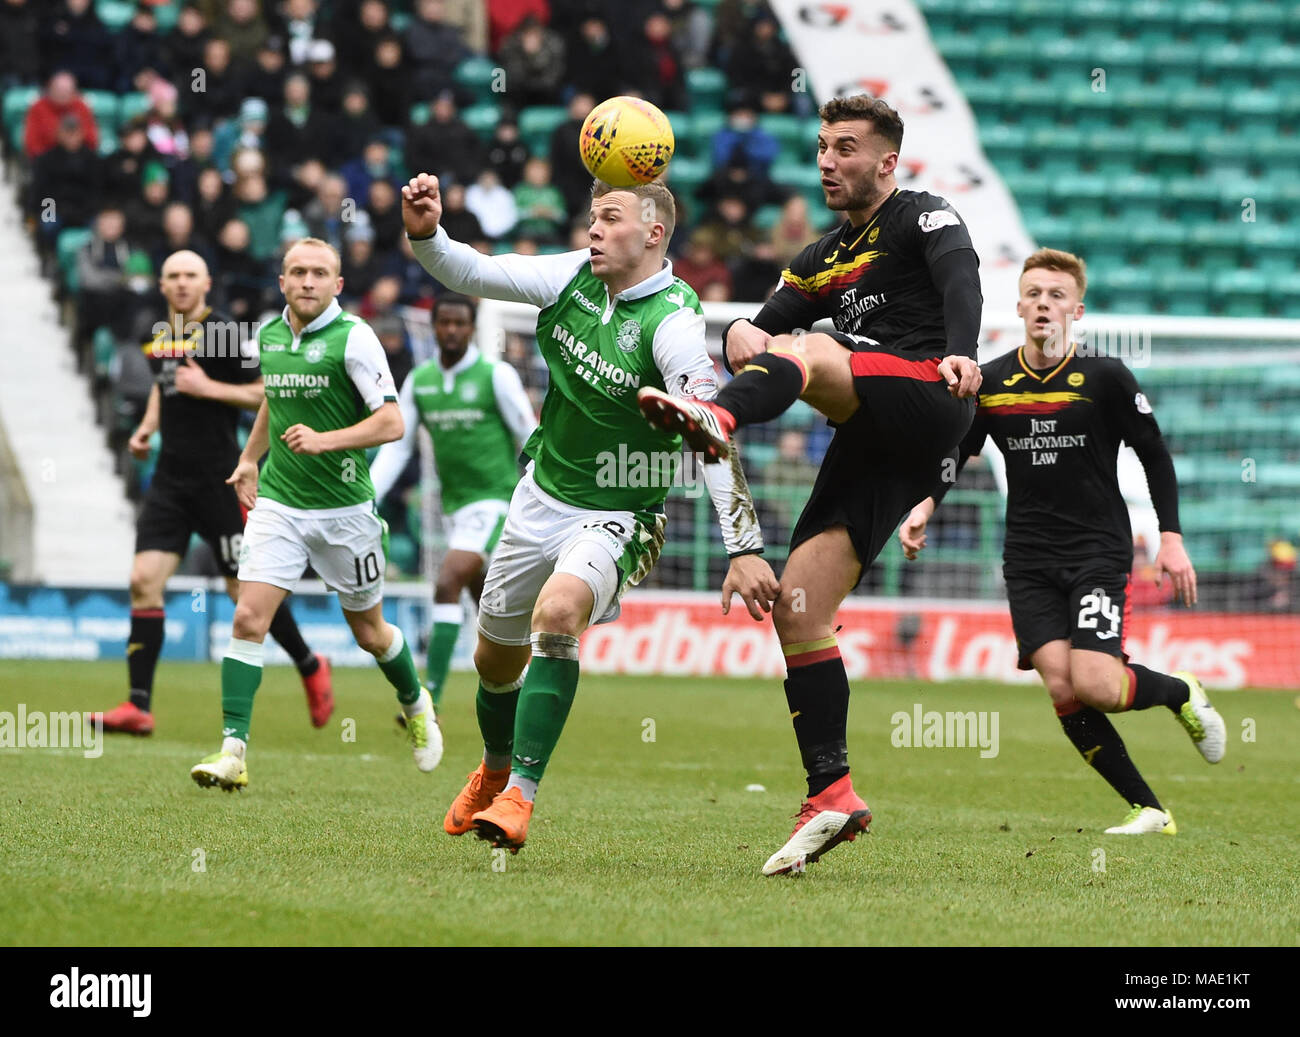 Scottish Premiereship, Hibernian v Partick Thistle, Edinburgh, Midlothian, UK. 31,03, 2018. Pic shows:  Partick Thistle defender, Baily Cargill, clears despite being under pressure from Hibs' Florian Kamberi during the second half of the Scottish Premiereship clash between Hibernian and Partick Thistle at Easter Road Stadium, Edinburgh.  Credit: Alamy/Ian Jacobs - Stock Image